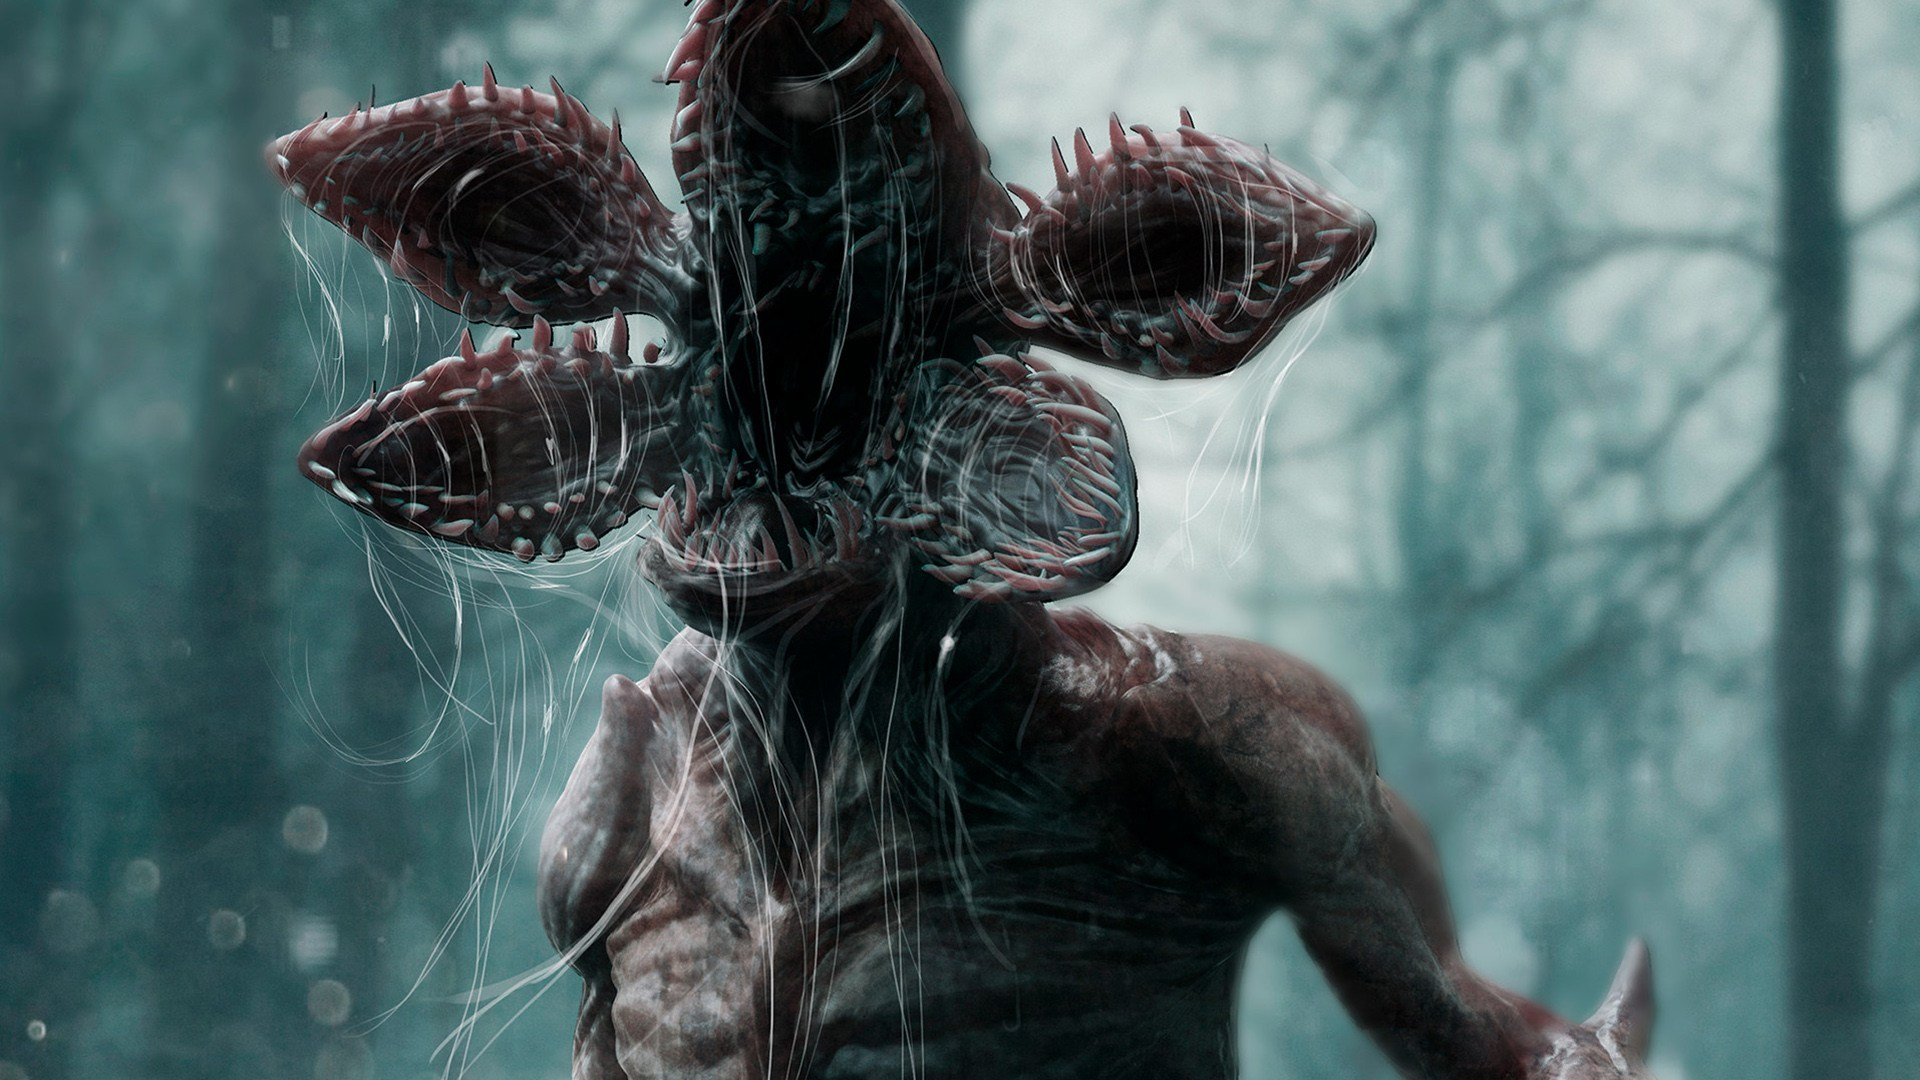 Dead by Daylight Recruits Stranger Thing's Demogorgon